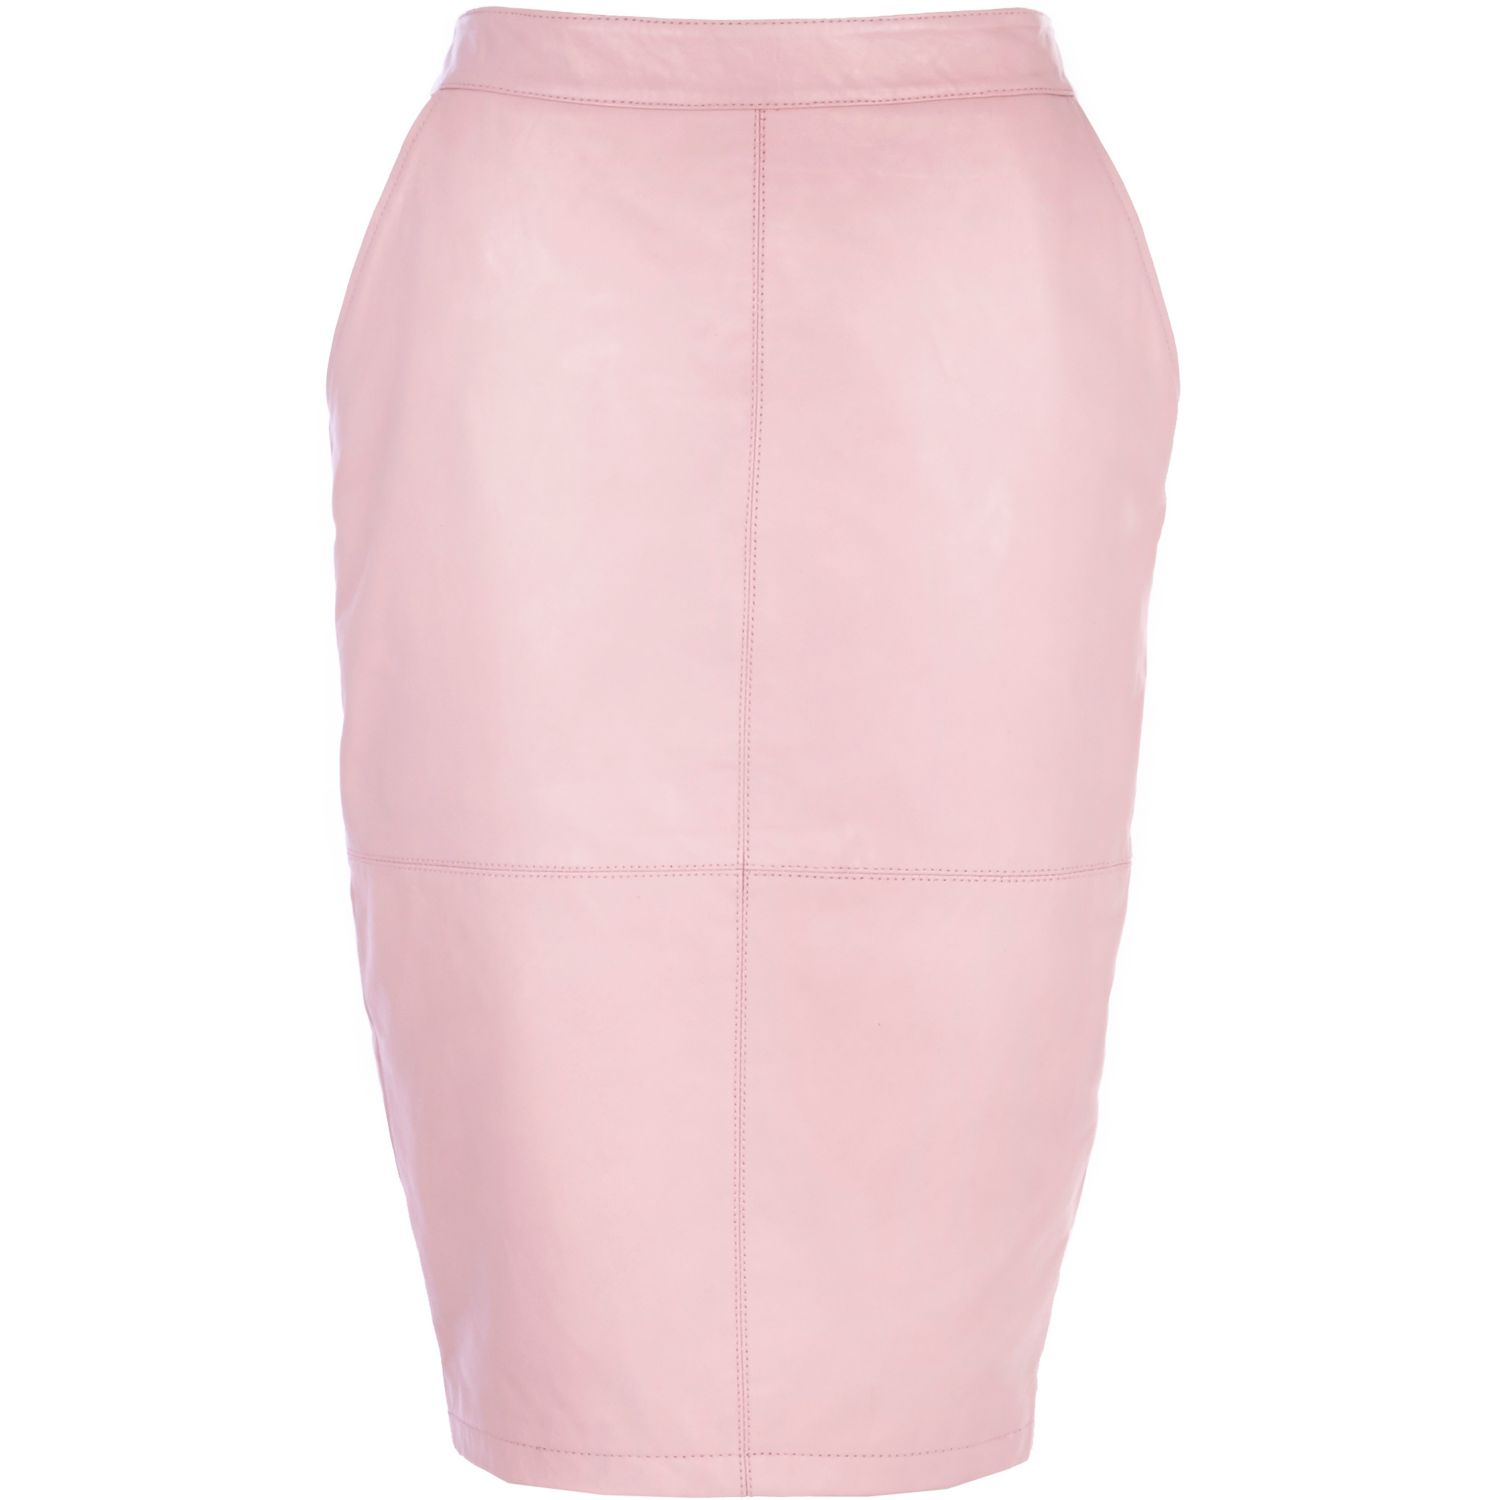 river island light pink leather pencil skirt in pink lyst